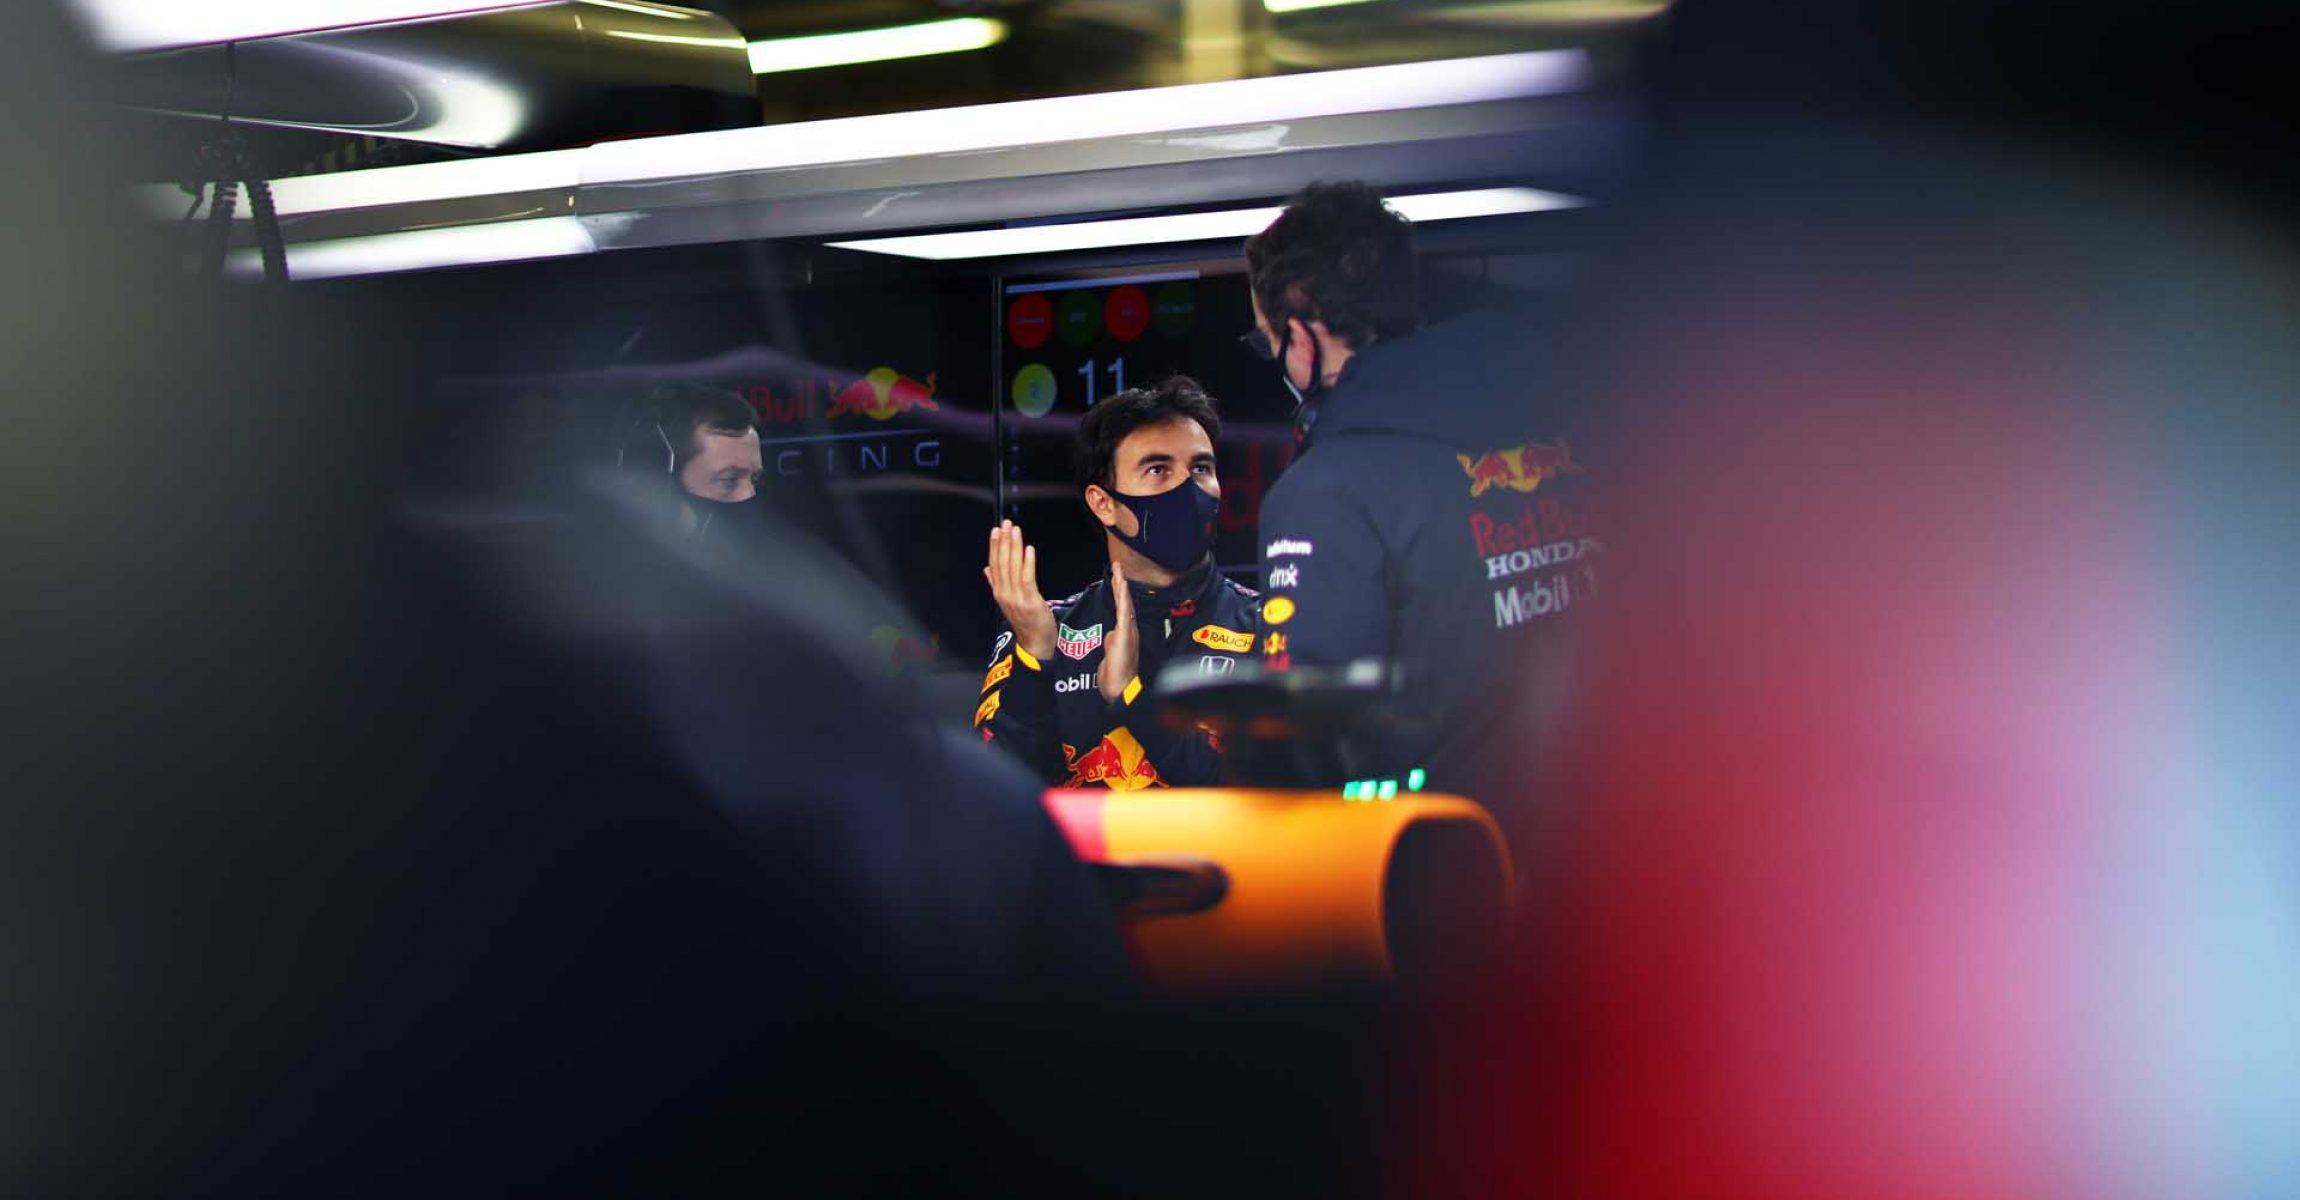 NORTHAMPTON, ENGLAND - FEBRUARY 24: Sergio Perez of Mexico and Red Bull Racing talks with his engineer in the garage during the Red Bull Racing Filming Day at Silverstone on February 24, 2021 in Northampton, England. (Photo by Dan Istitene/Getty Images for Red Bull Racing)